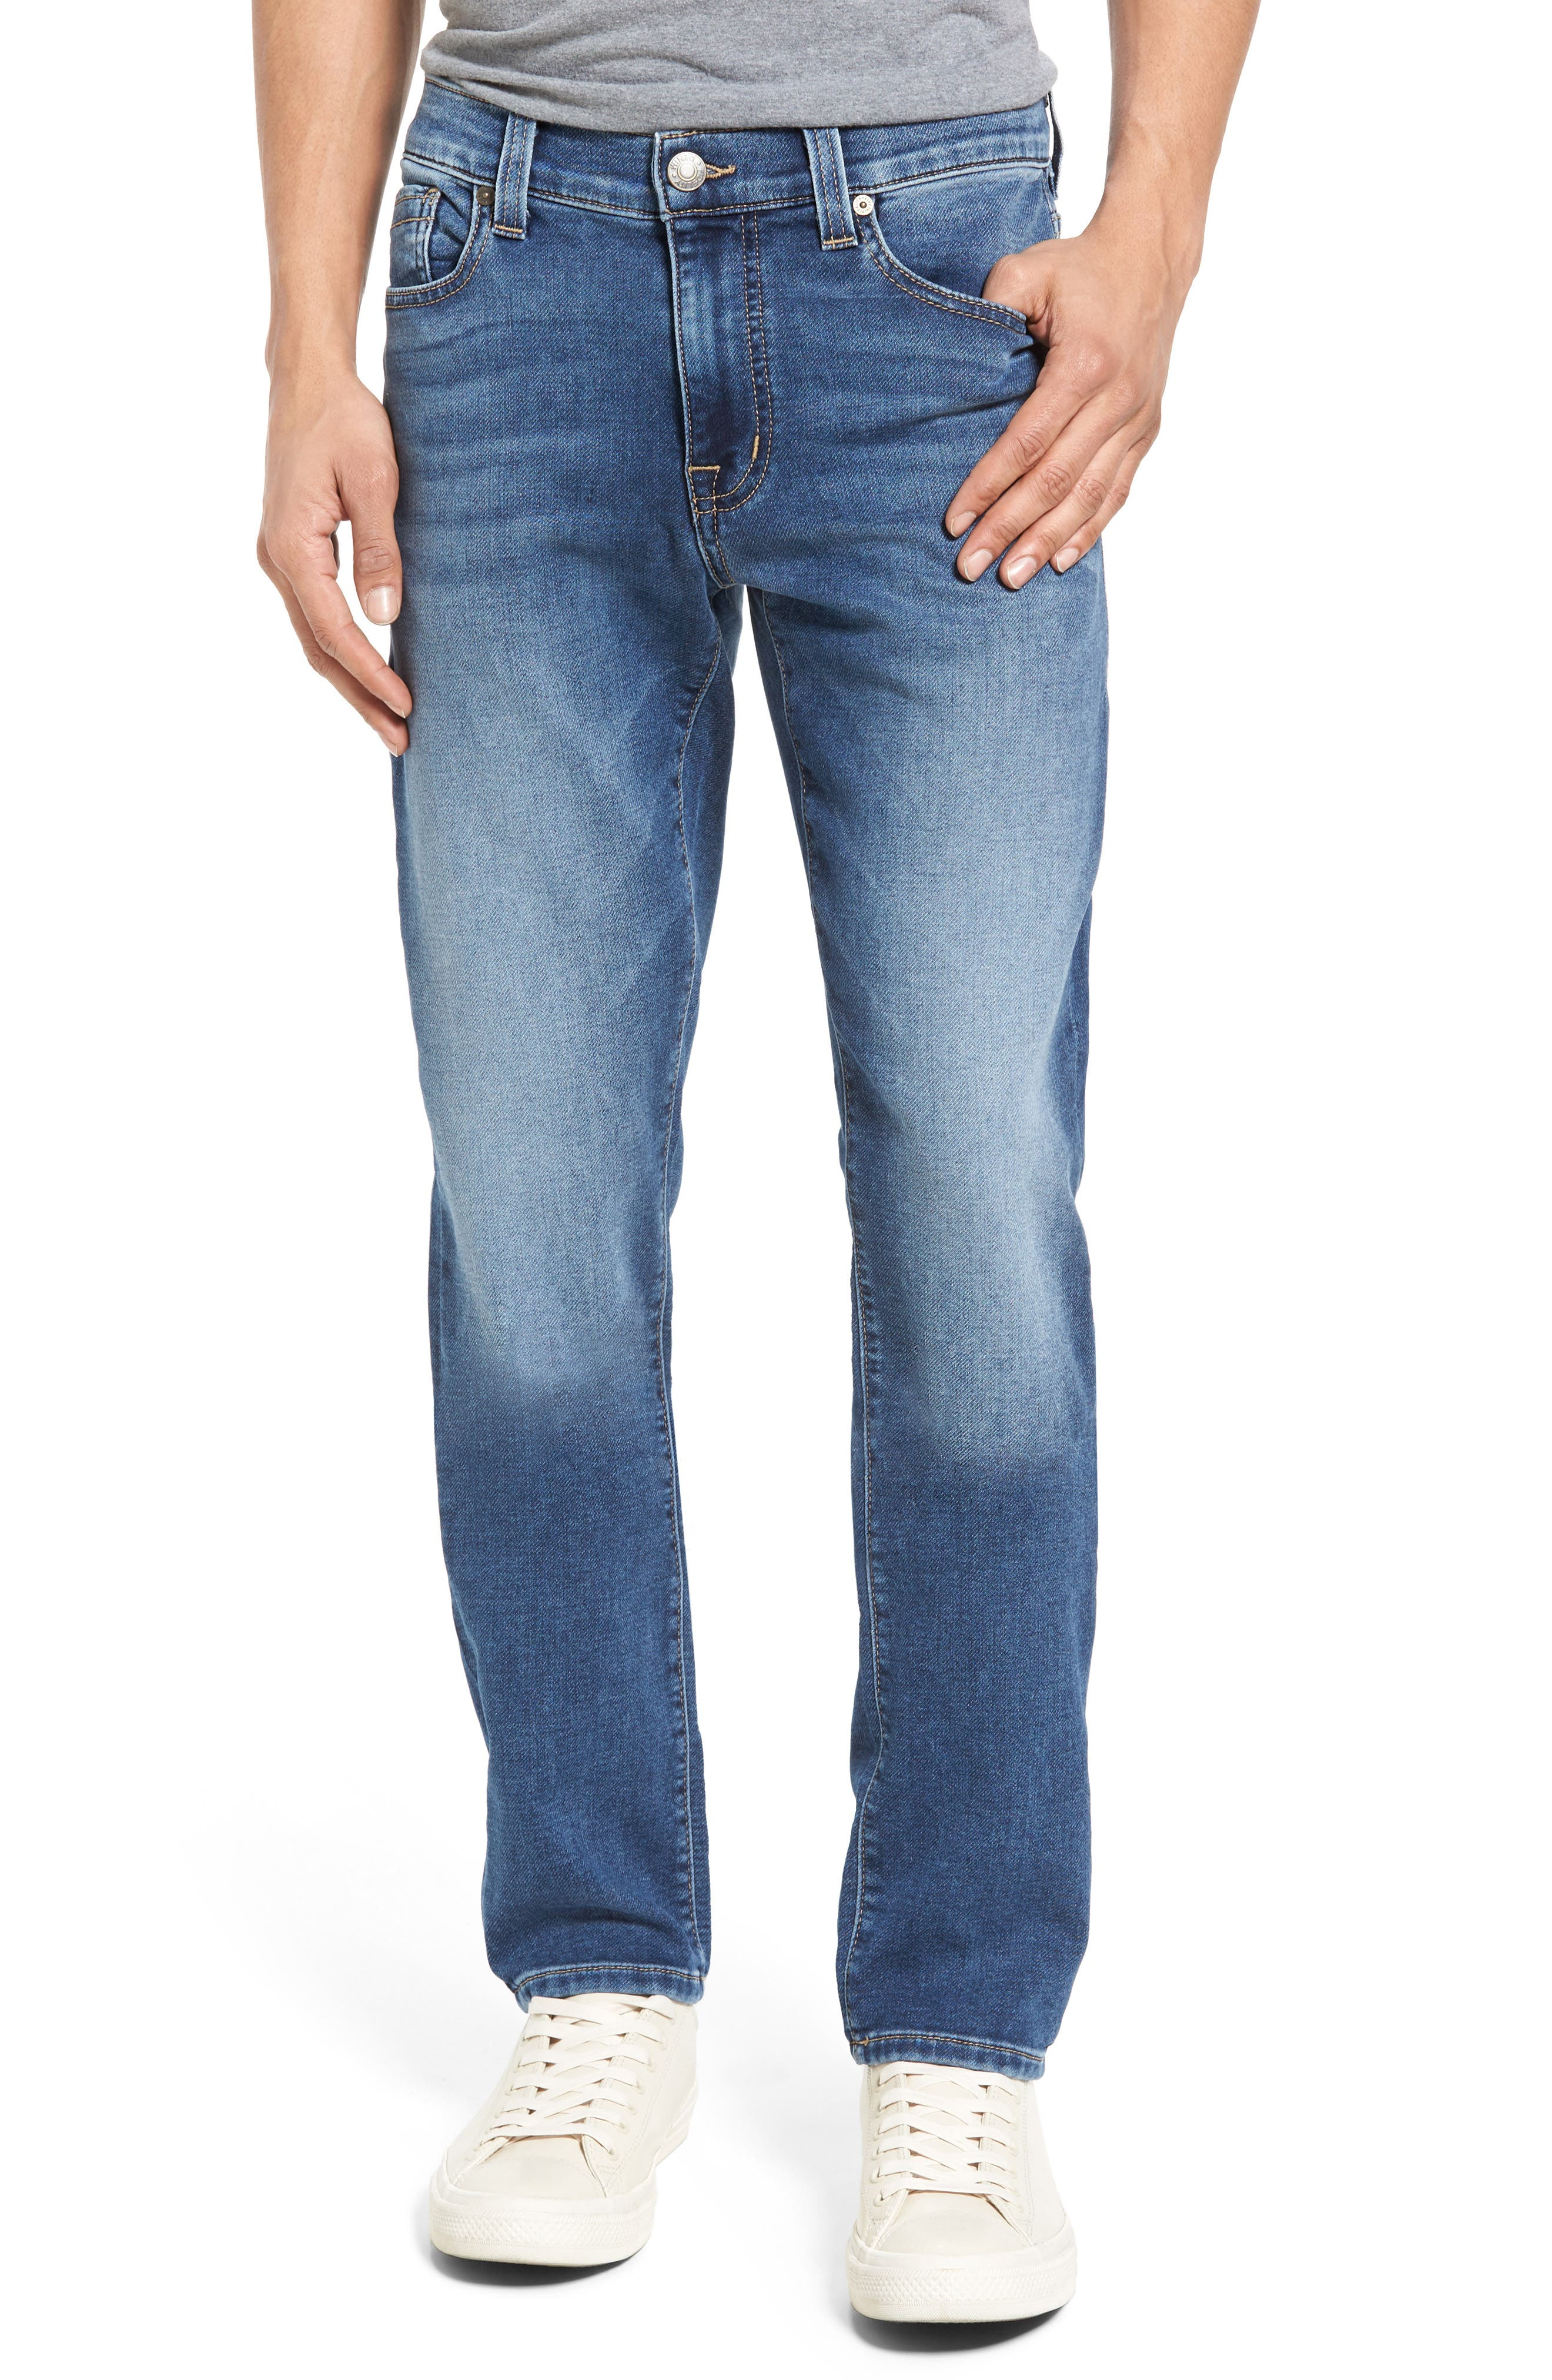 Fideliety Denim Torino Slim Fit Jeans,                             Main thumbnail 1, color,                             424